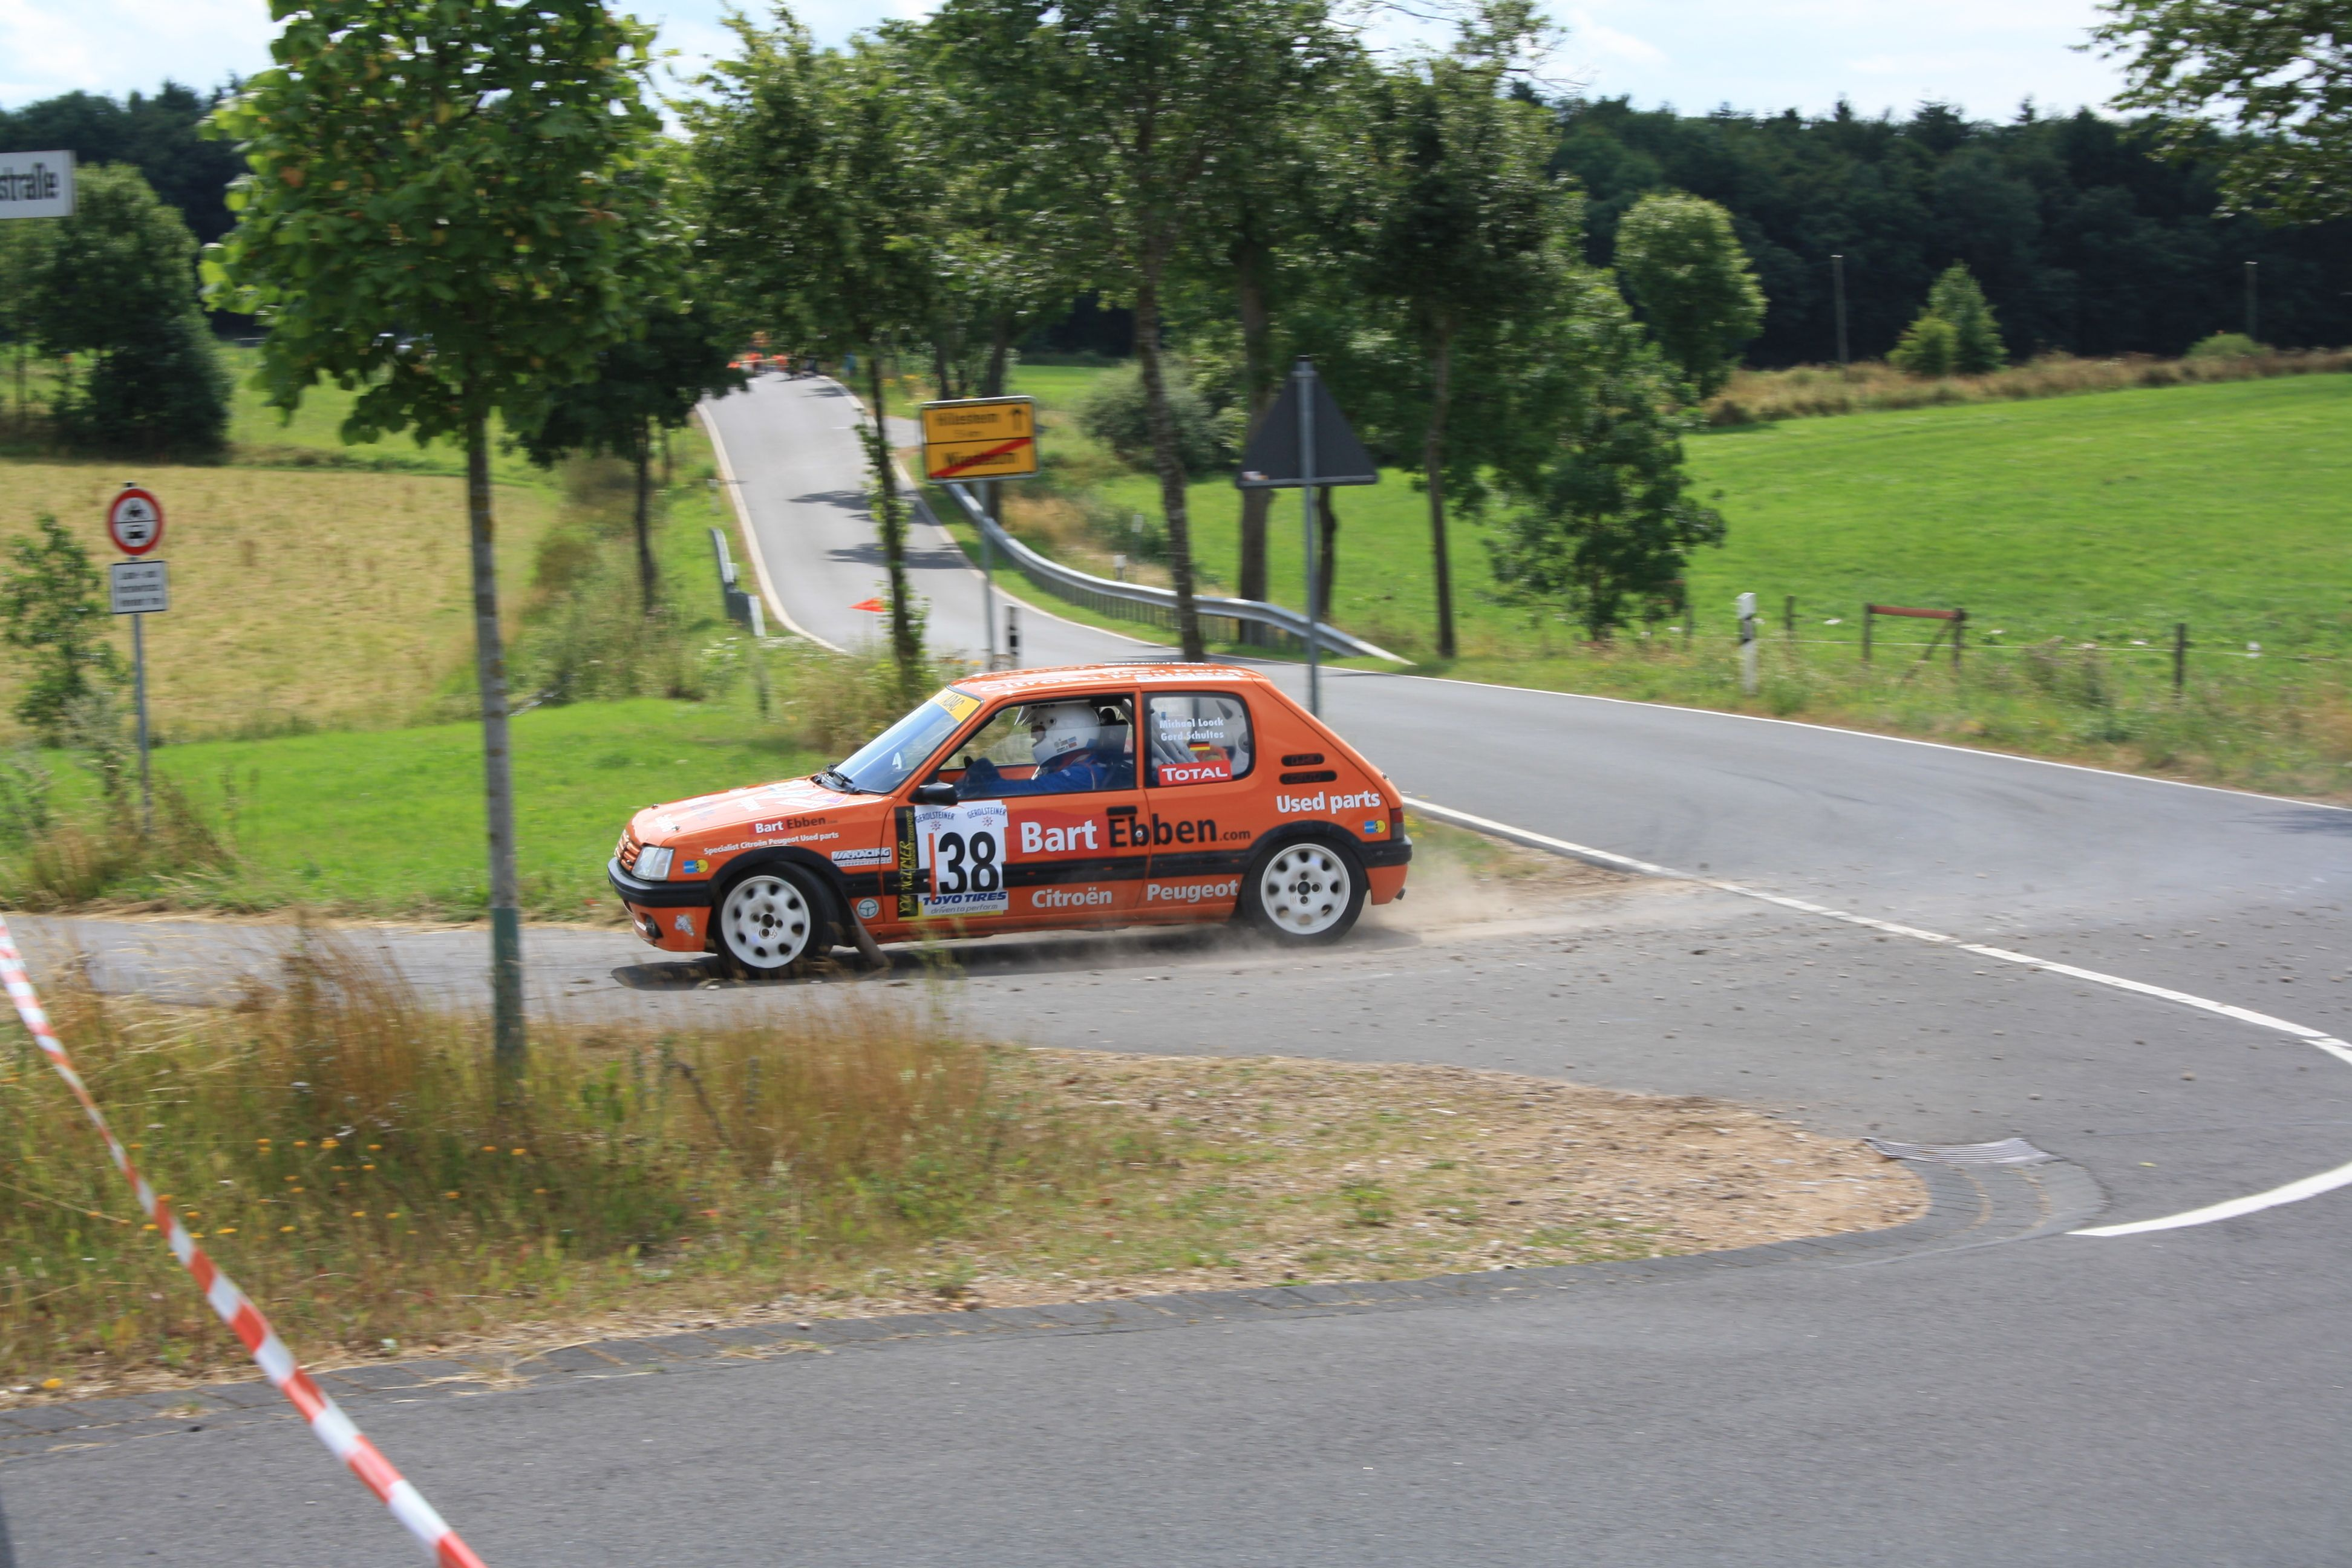 Michael Loock driving the Peugeot 205 GTI Rally very fast in the german ADAC Youngtimer Trophy. http://bartebben.com/blog/rally-news/7.html    Michael Loock sehr schnell mit die Peugeot 205 GTI Rallye im ADAC Youngtimer Trophy Rallye Oberehe 03.08.2013. http://bartebben.de/blog/rallye-news/7.html    Bild: Wolfgang Altringer